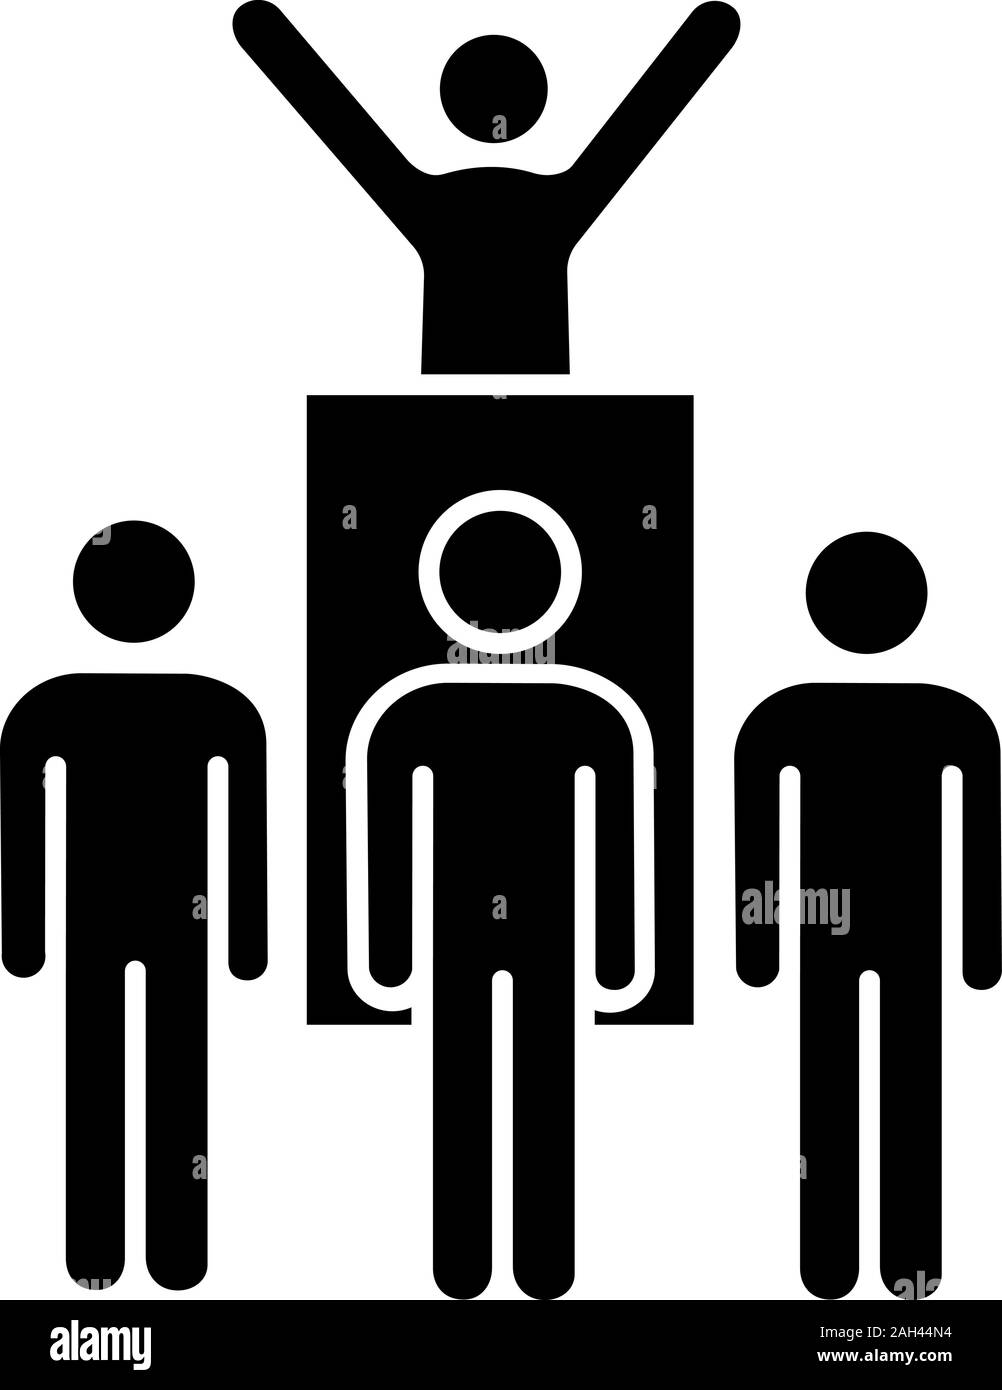 Protest leader glyph icon. Revolution. Protest collective actions. Political behaviour. Political speech. Social movement. Protesters. Silhouette symb Stock Vector